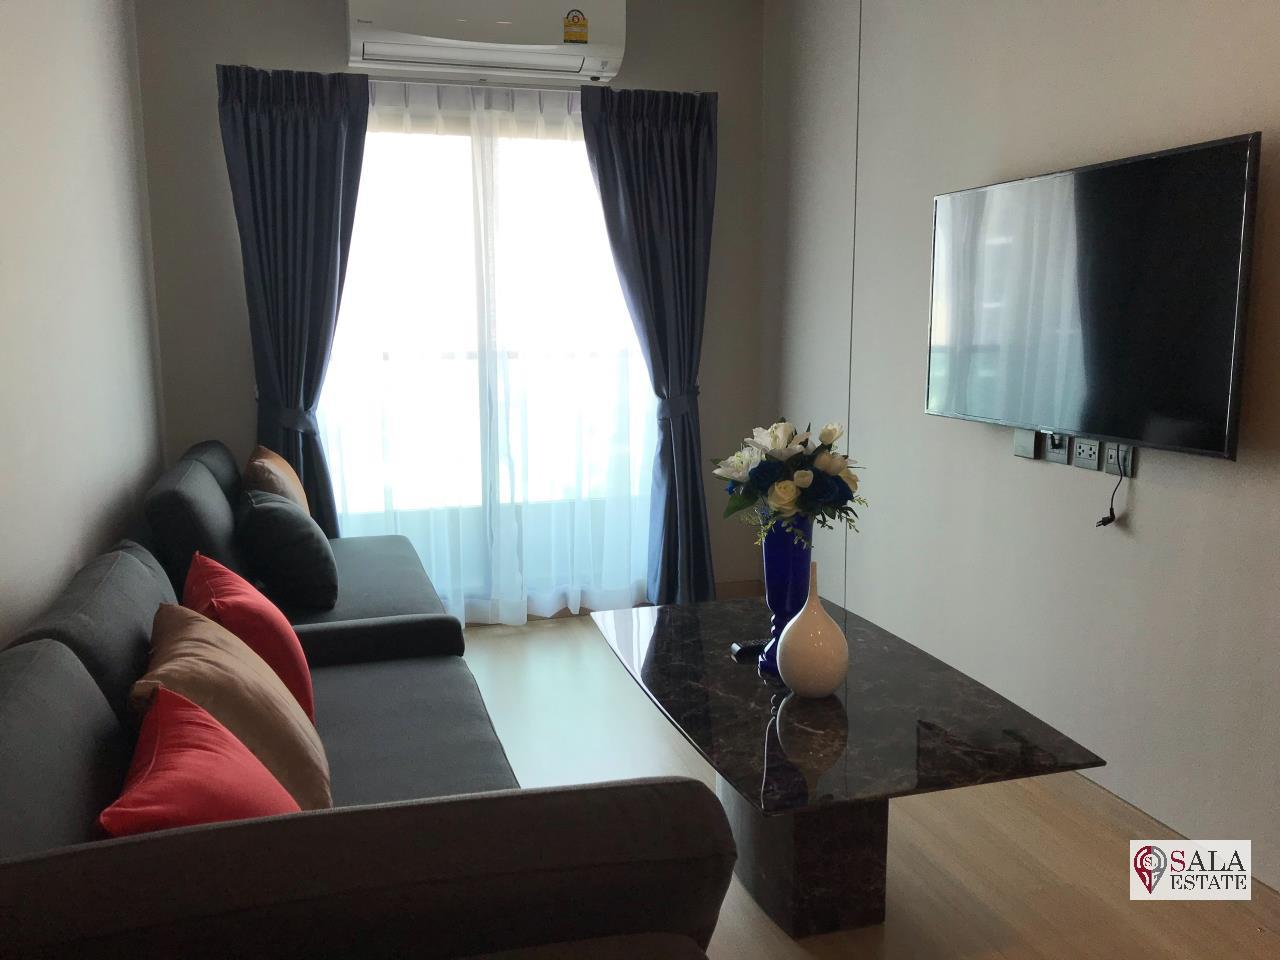 SALA ESTATE Agency's LUMPINI SUITE DINDAENG-RATCHAPRAROP – BTS VICTORY MONUMENT, 2 BEDROOM 1 BATHROOM, FULLY FURNISHED, CITY VIEW 2